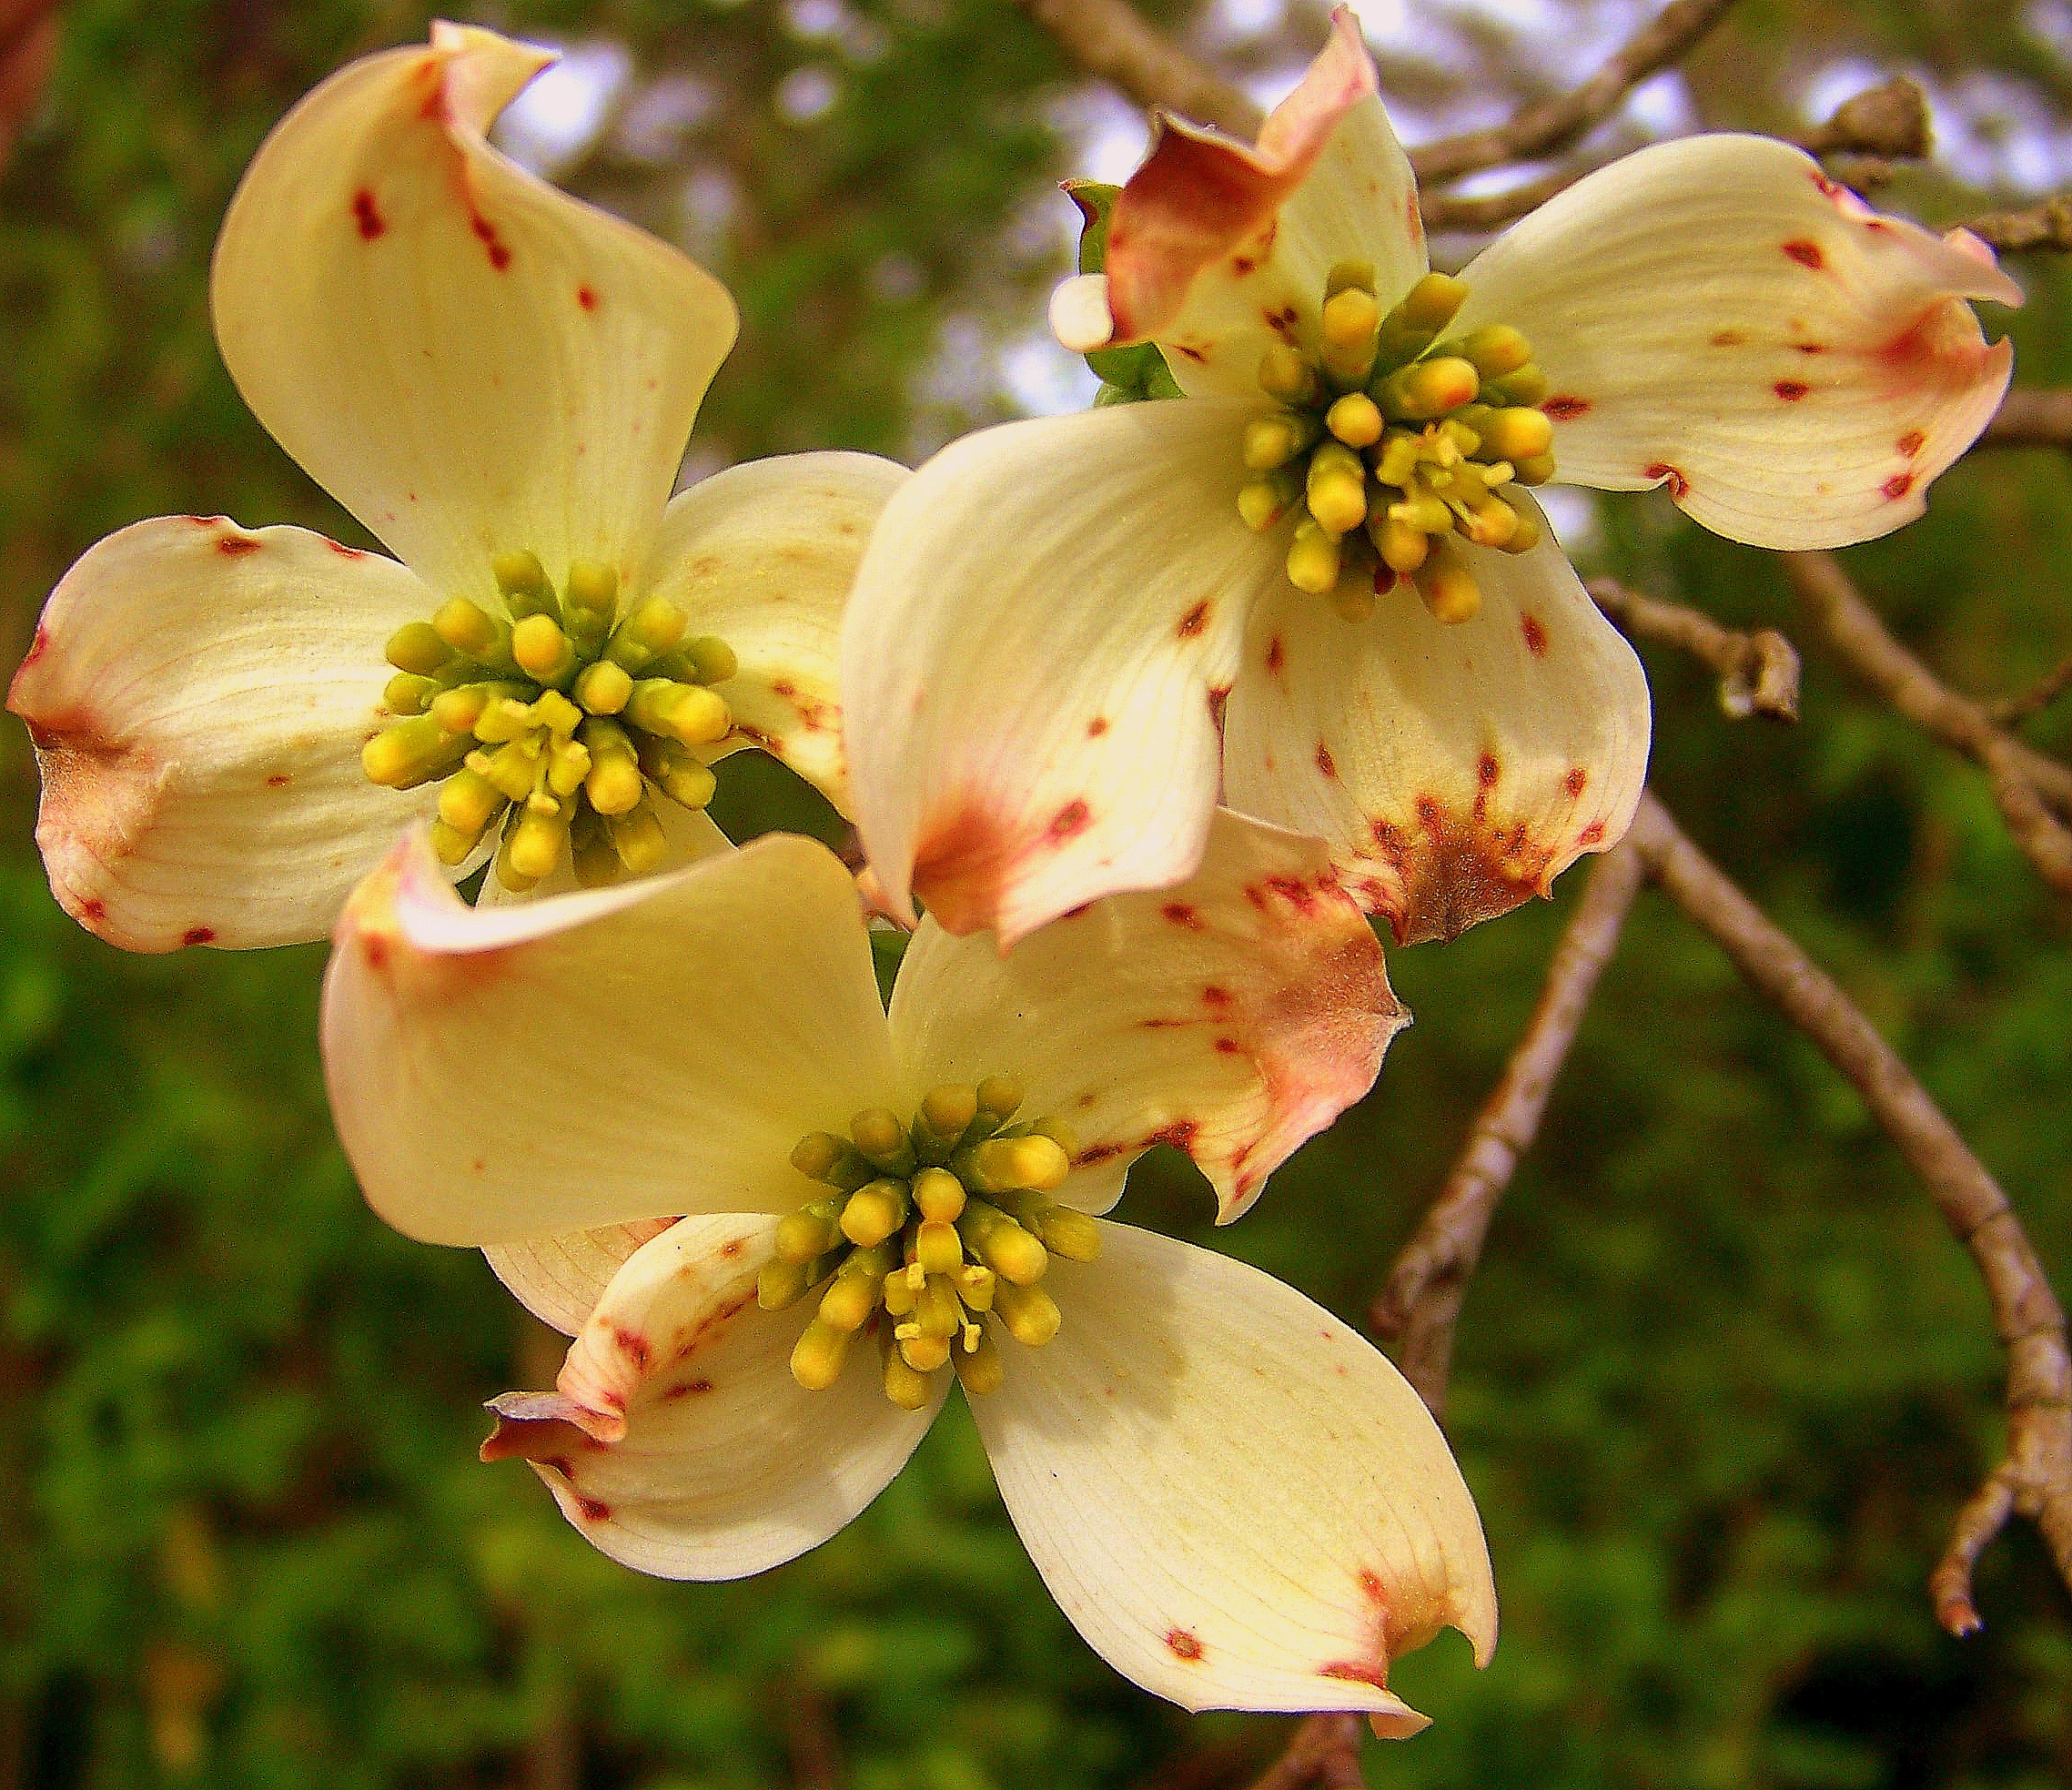 Dogwood blooms in Spring